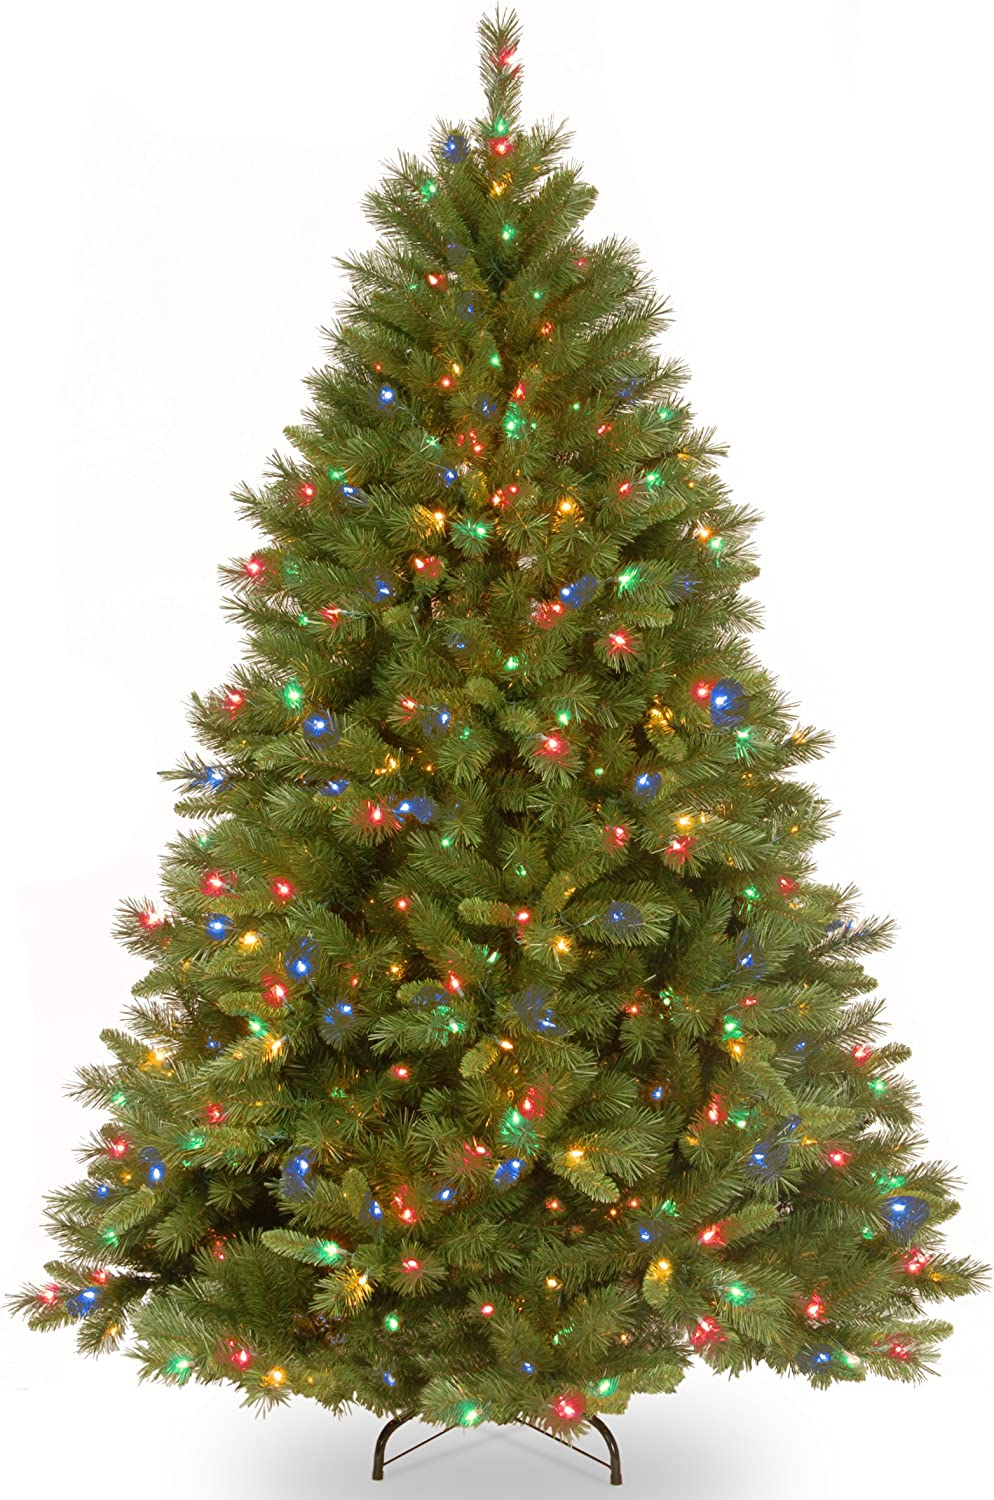 National Tree Company lit Artificial Christmas Tree   Includes Pre-Strung Multi-Color Lights and Stand   Winchester Pine-7.5 ft, 60X60X90, Green